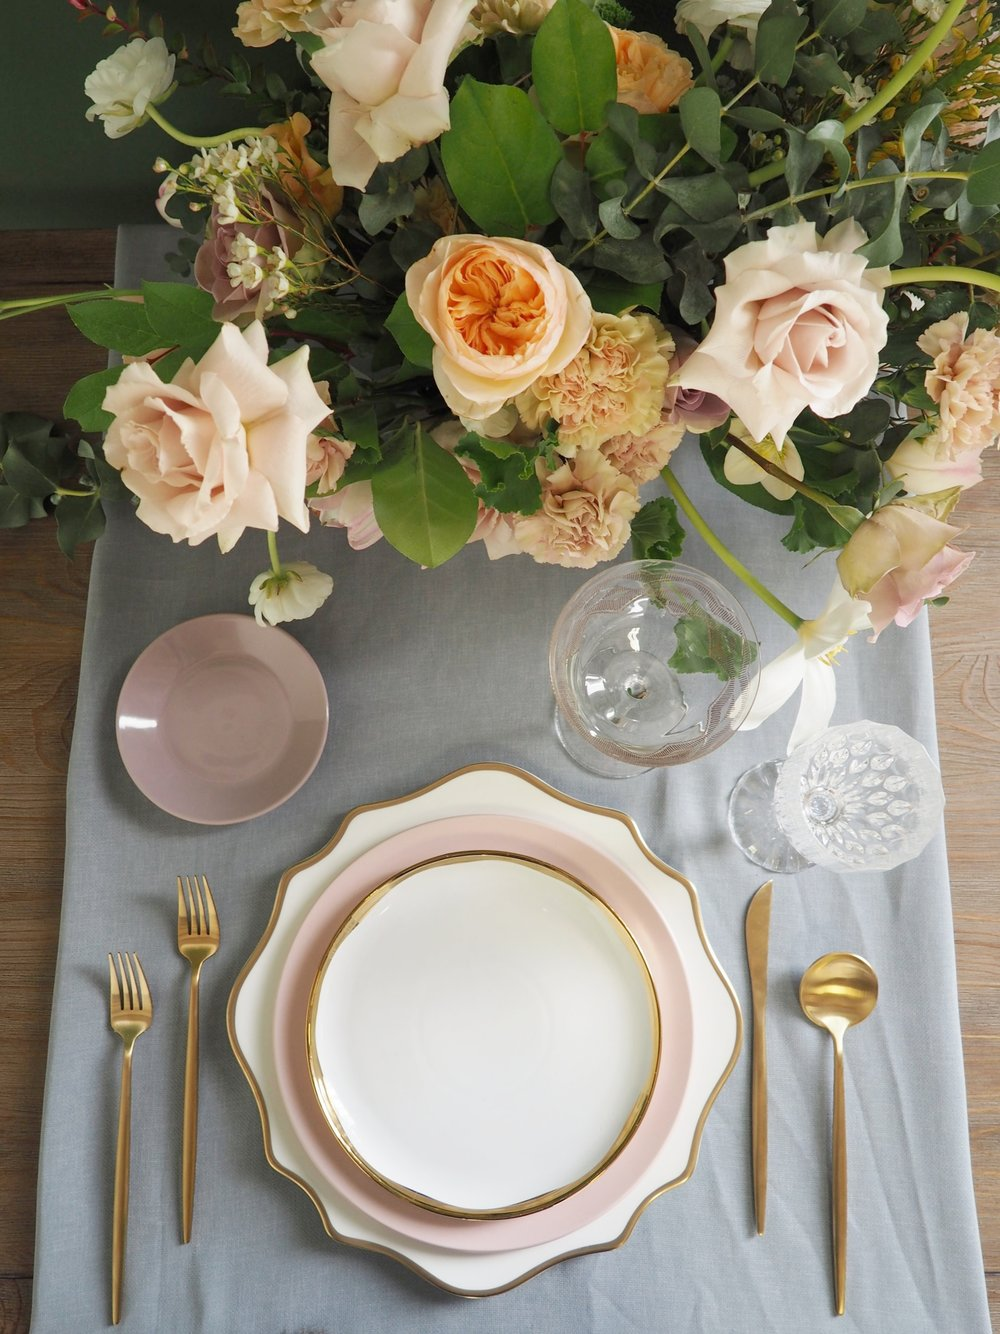 Eclectic Crystal Goblet, Etched Gold Coupe, Gold Flatware, Aura Scalloped Gold Charger, Blush Dinner Plate, Aura White & Gold Salad Plate, Mauve B&B plate